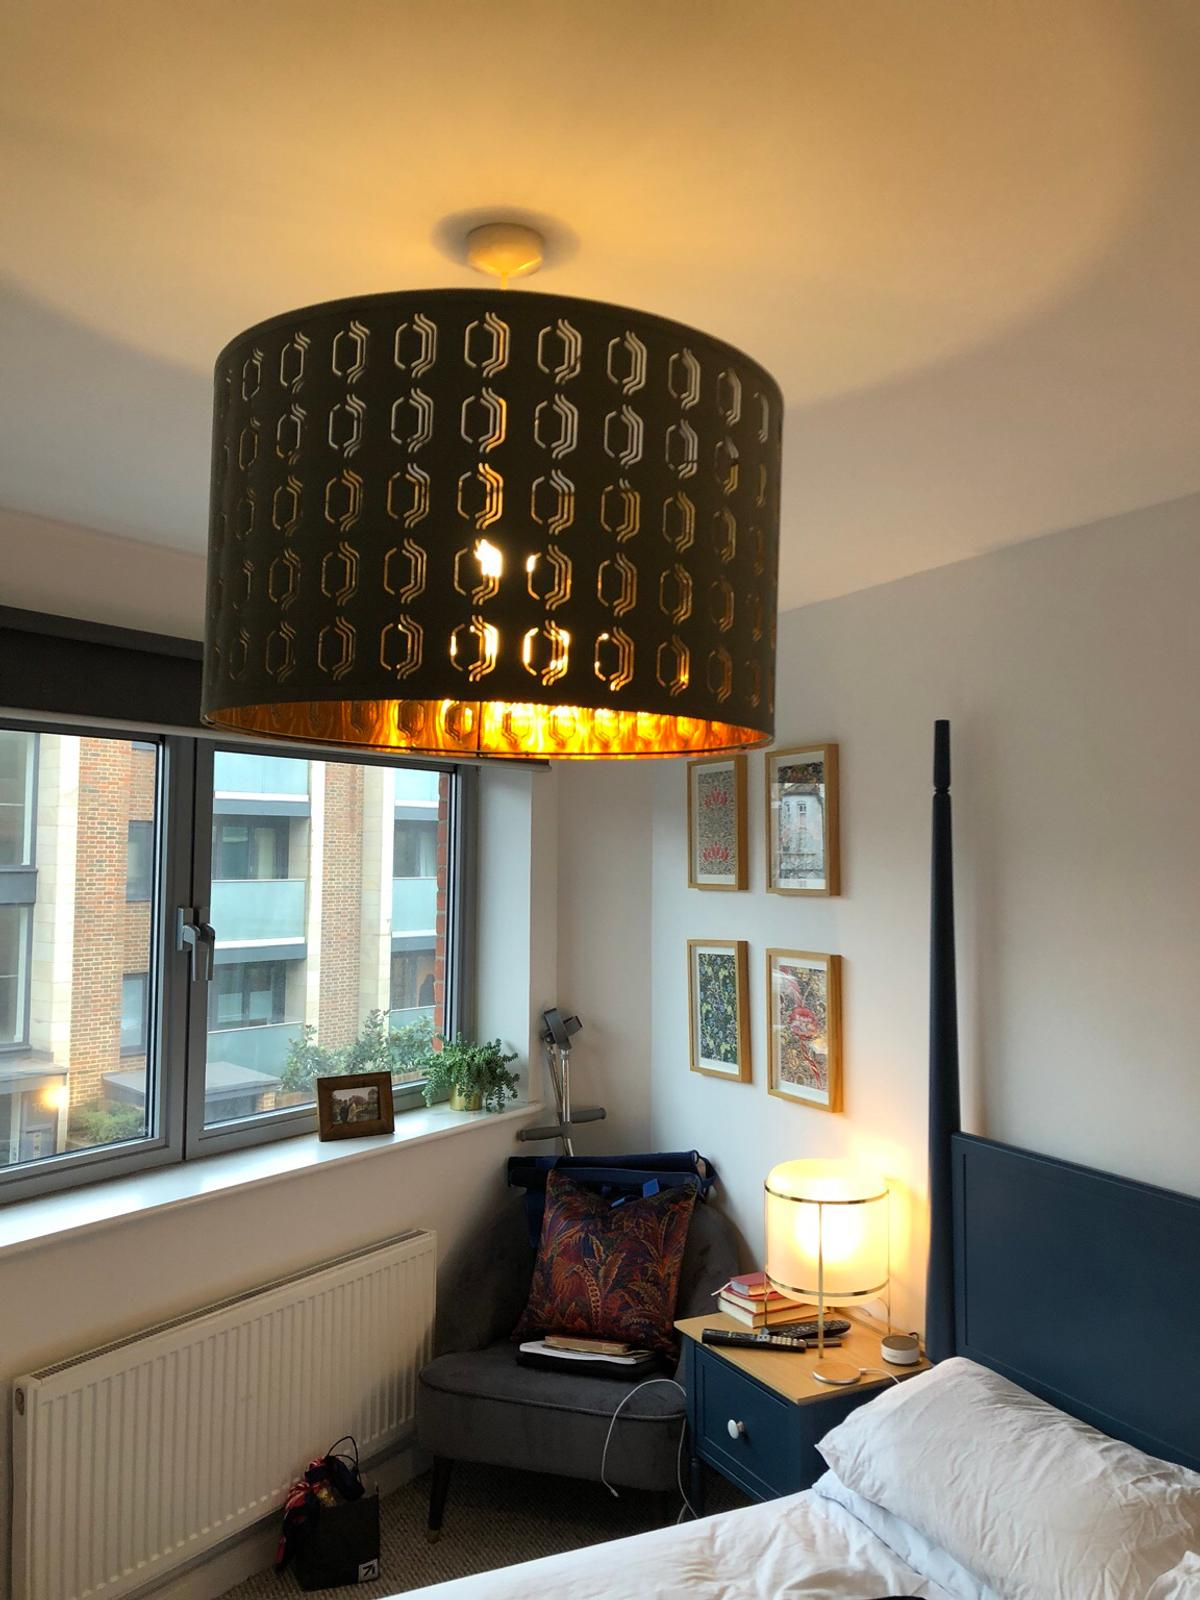 Ikea NymÖ Lamp Light Shade In N7 Islington For 15 00 For Sale Shpock